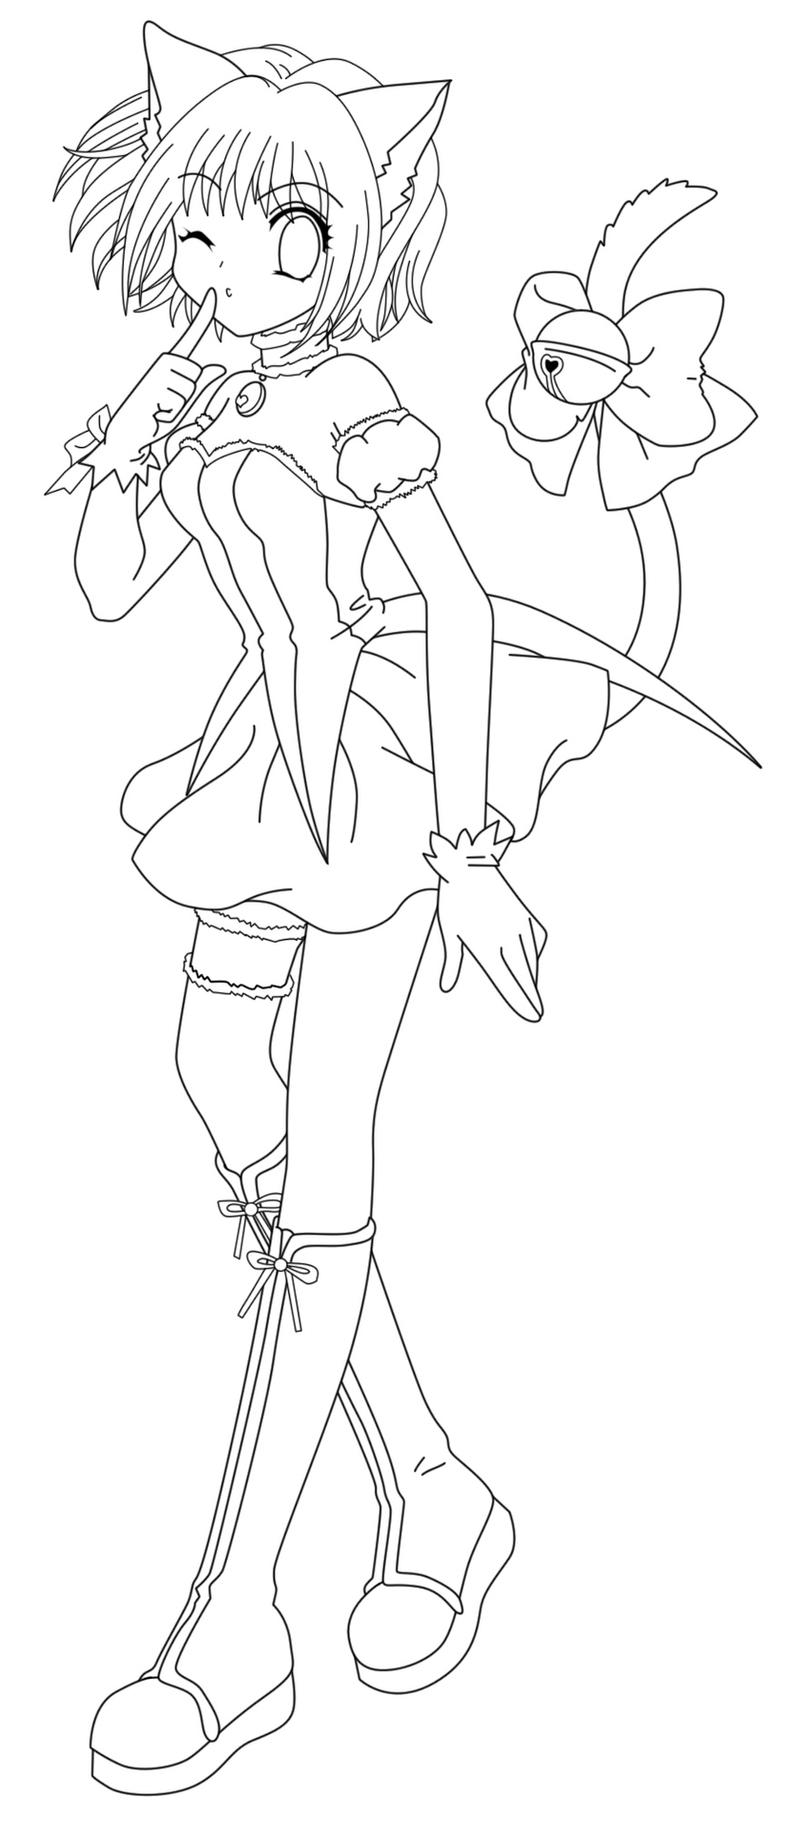 Mew lineart zoey by sweetamberkins on deviantart for Mew coloring pages